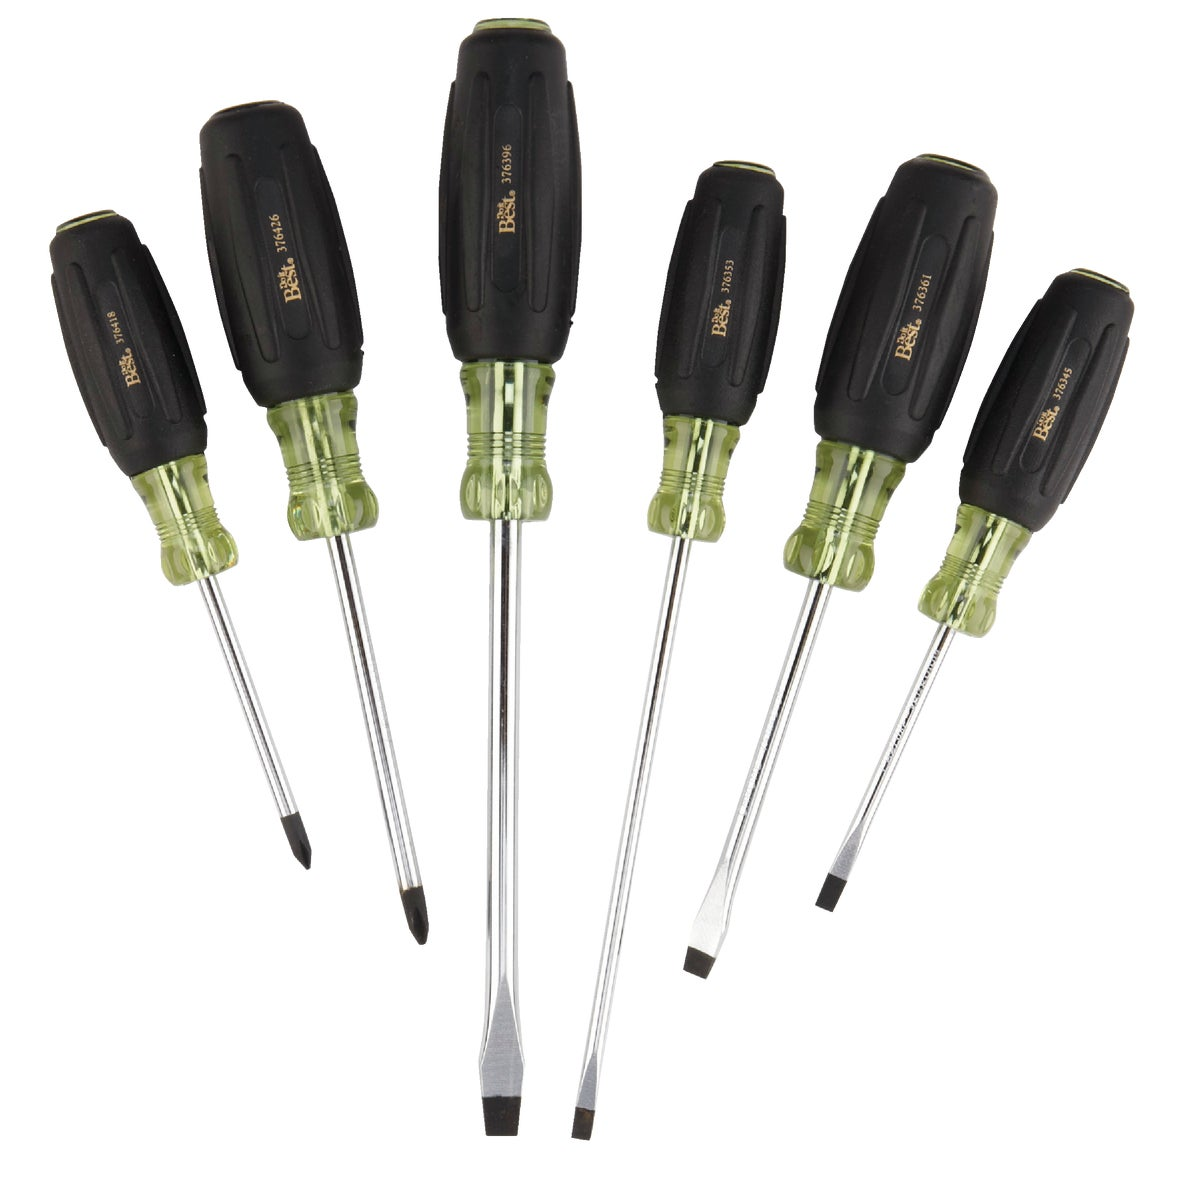 6PC SCREWDRIVER SET - 345520 by Do it Best